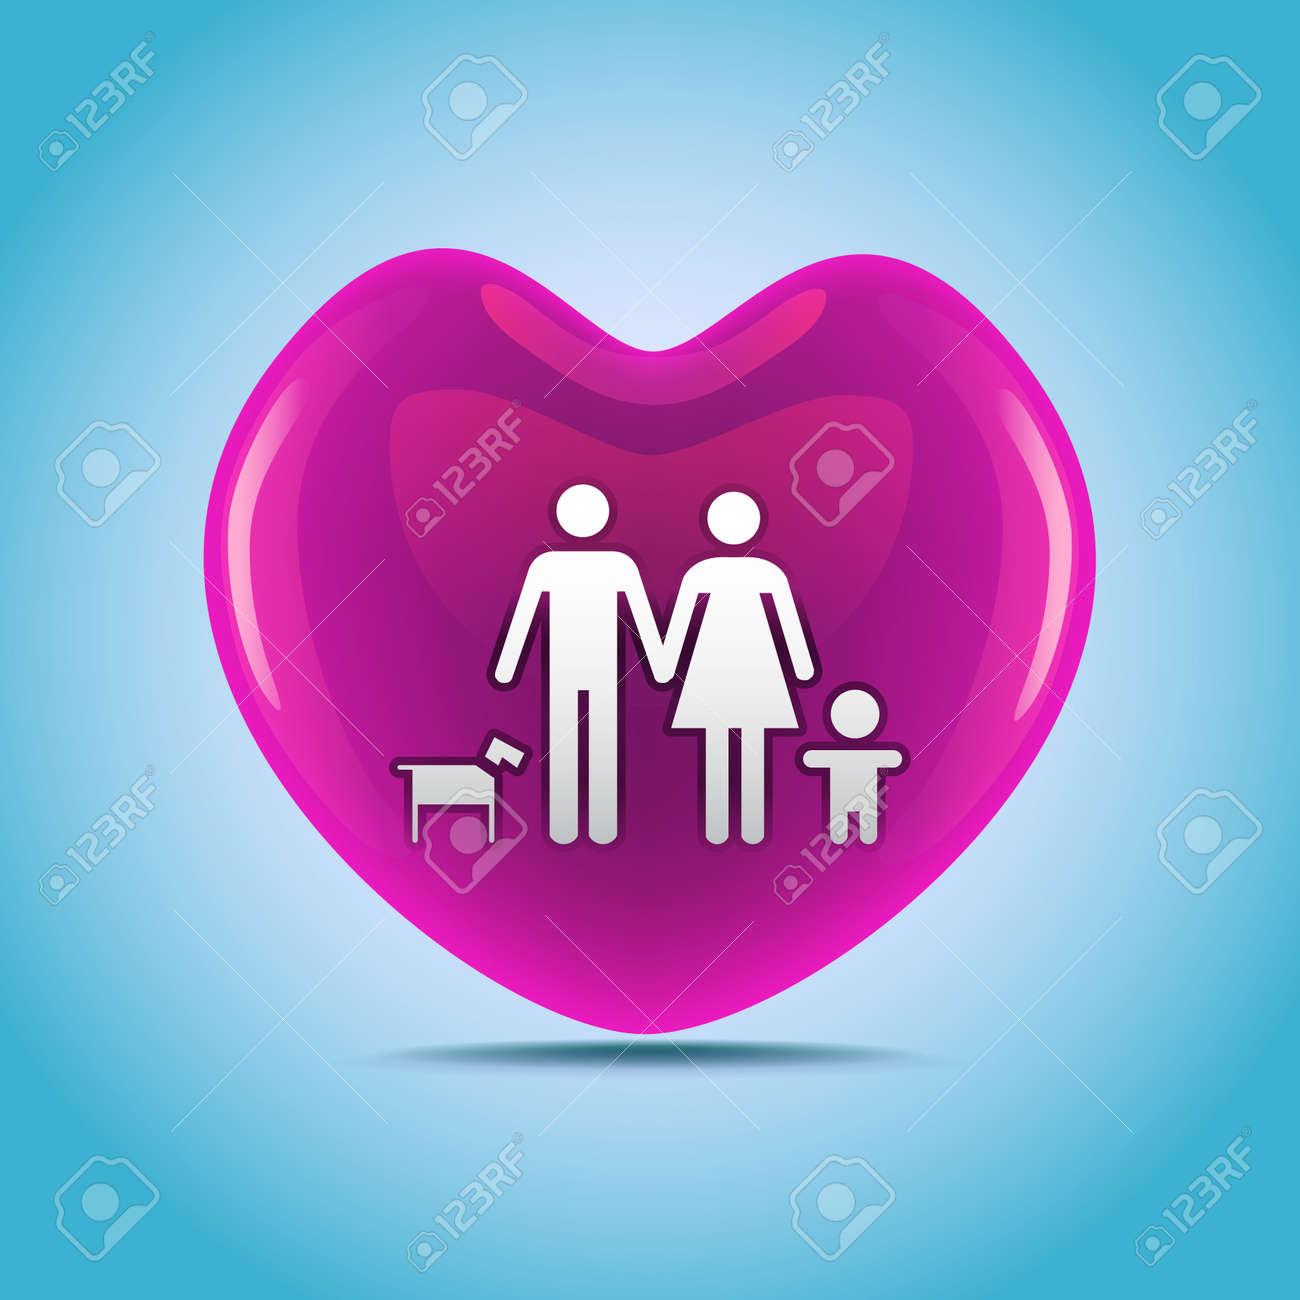 A basic family in big heart symbol illustration royalty free a basic family in big heart symbol illustration stock vector 22619780 buycottarizona Image collections